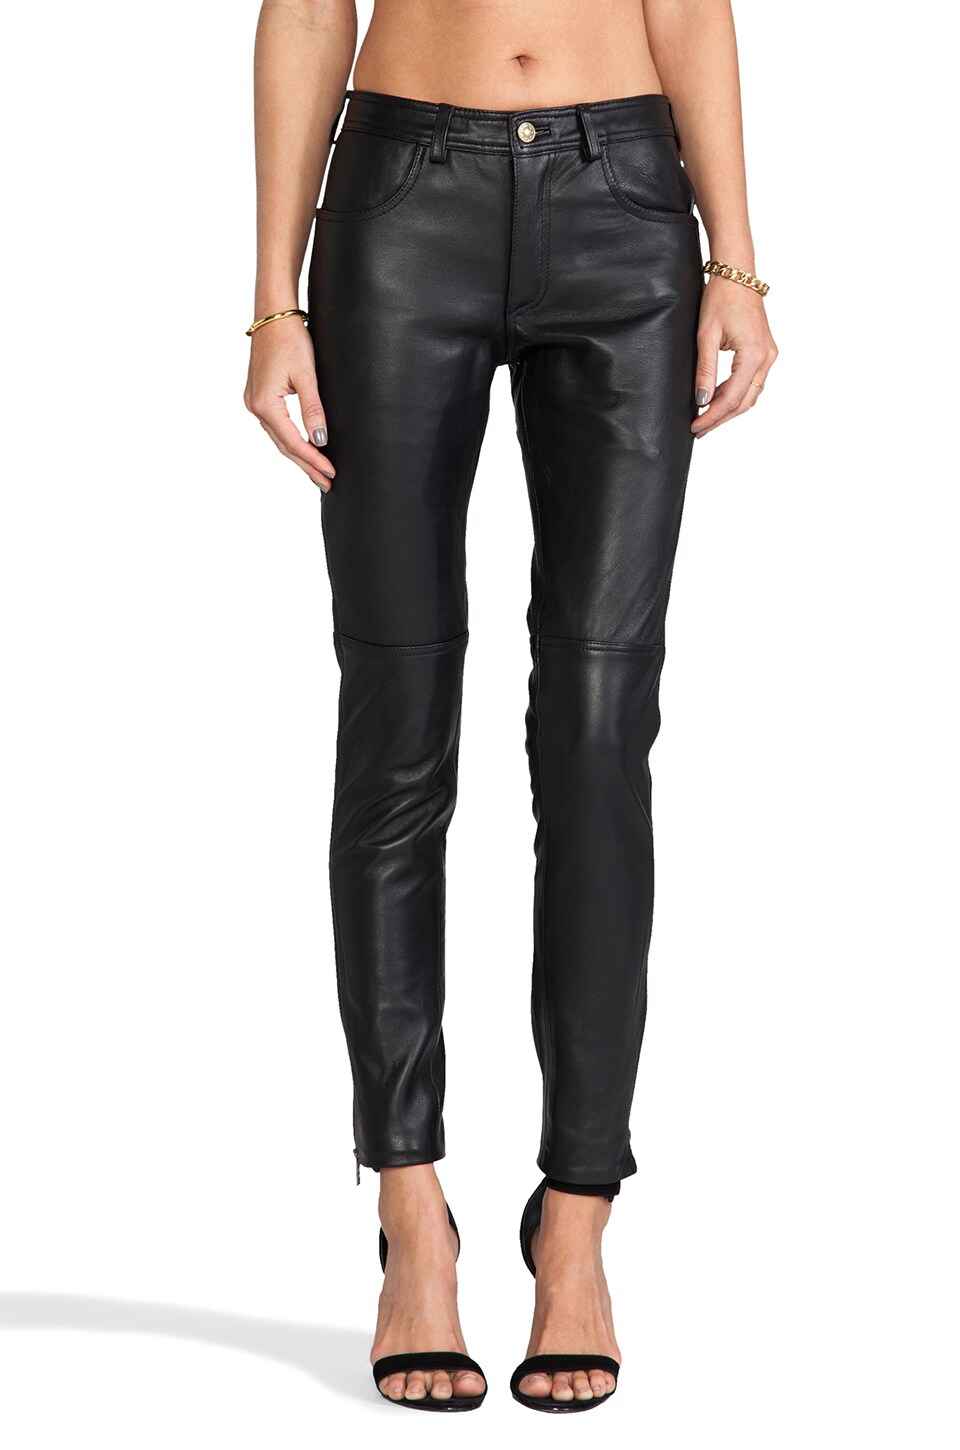 Viparo Kiara Fitted Leather Pant in Black